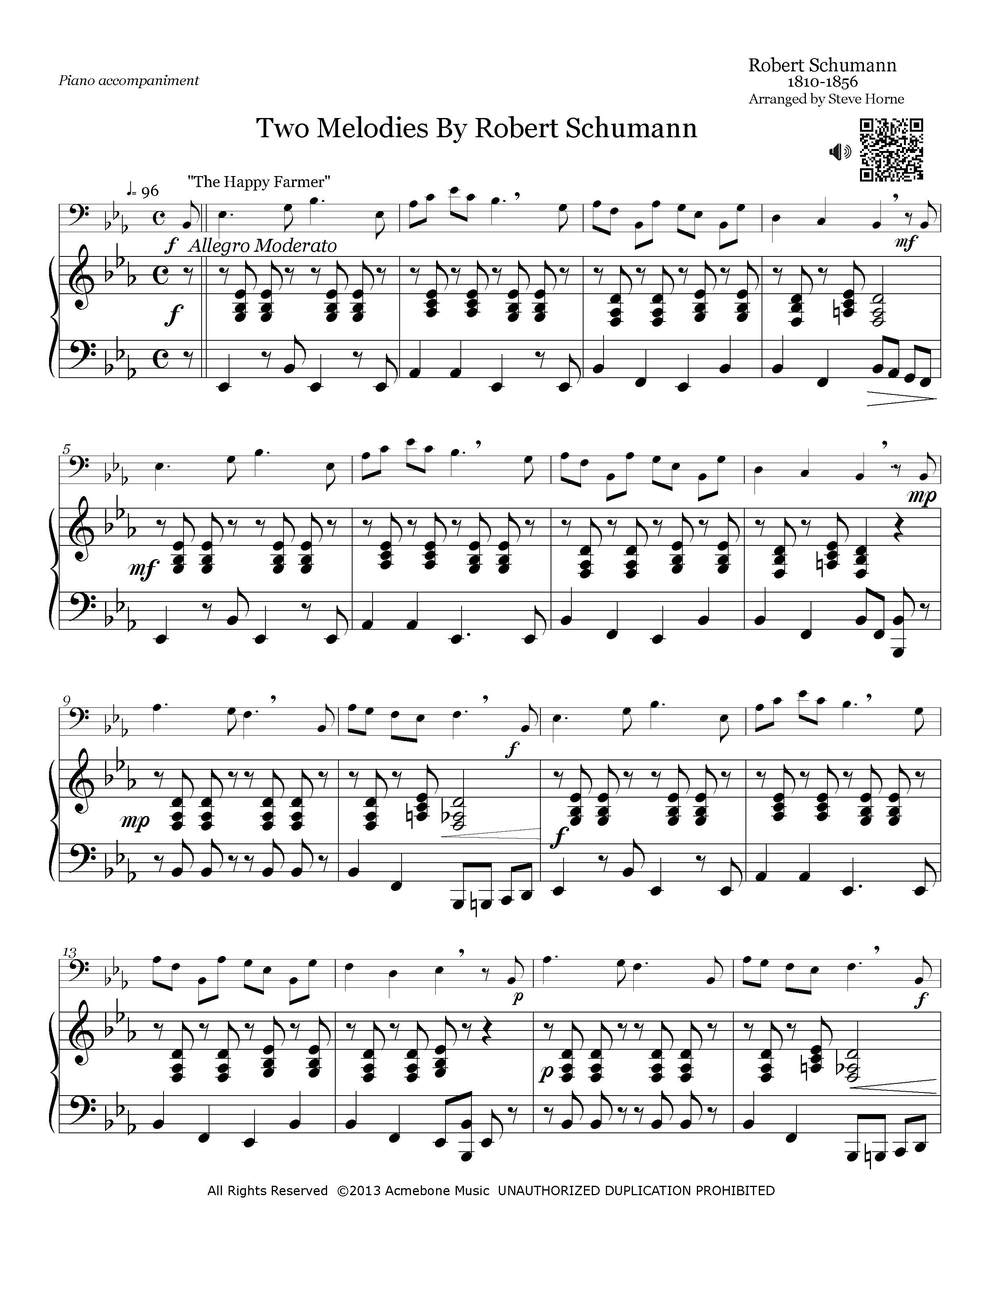 Two Melodies By  R. Schumann_Gmin_acc_Page_1.jpg